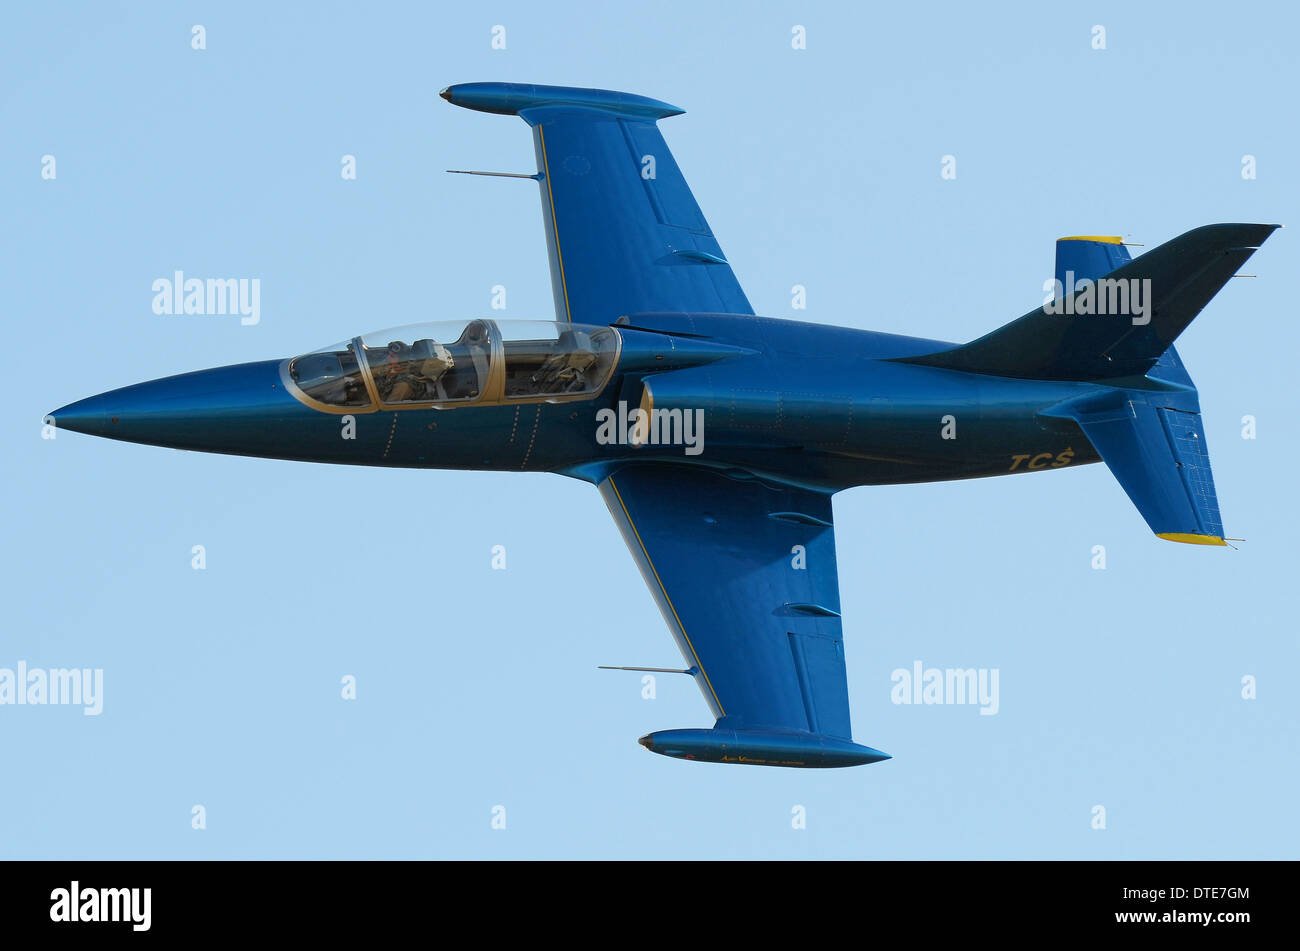 The Aero L-39 Albatros is a high-performance jet trainer aircraft developed in Czechoslovakia that first flew in 1969 - Stock Image